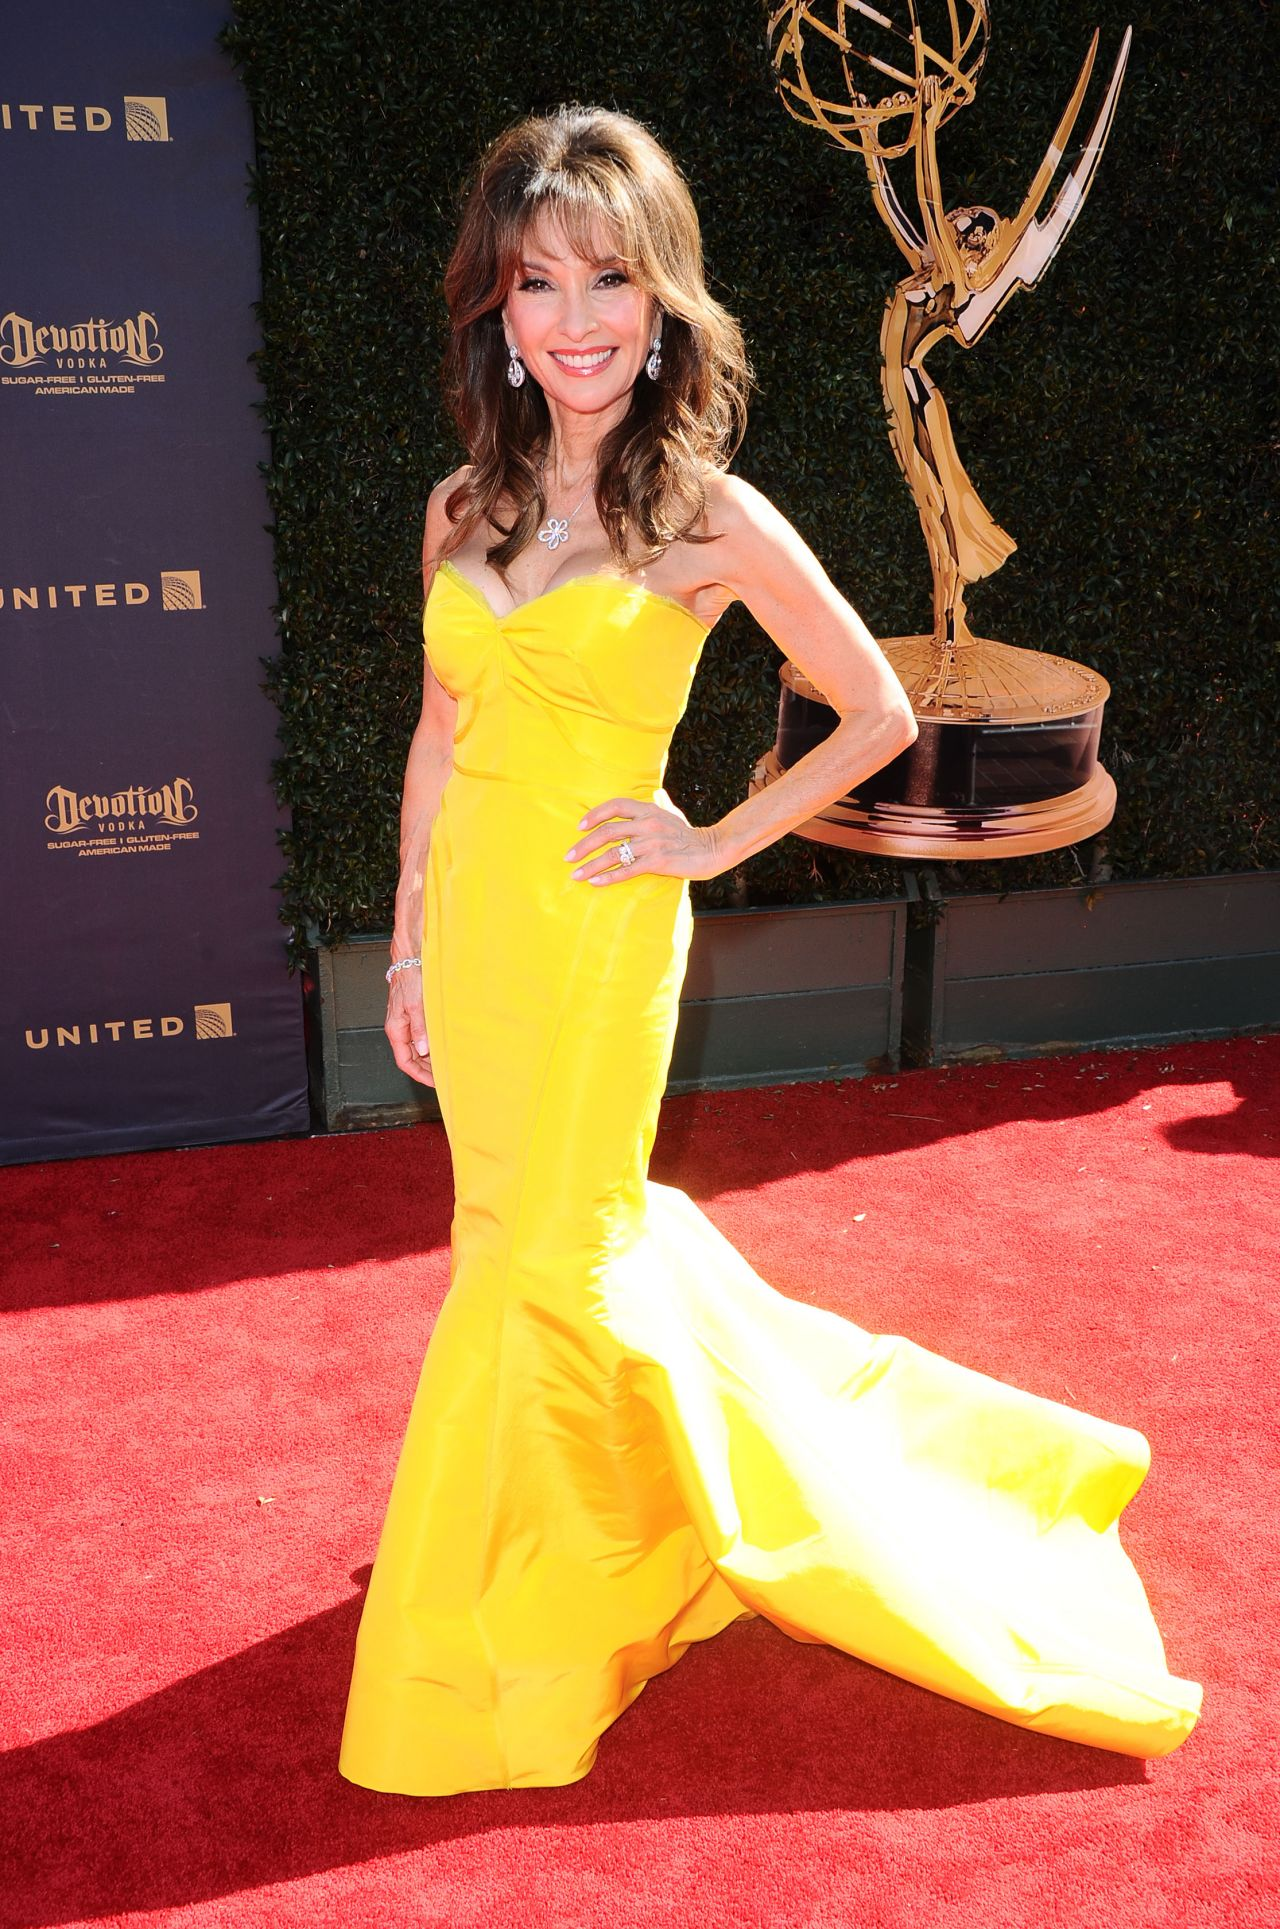 Susan Lucci Daytime Emmy Awards In Los Angeles 04 30 2017